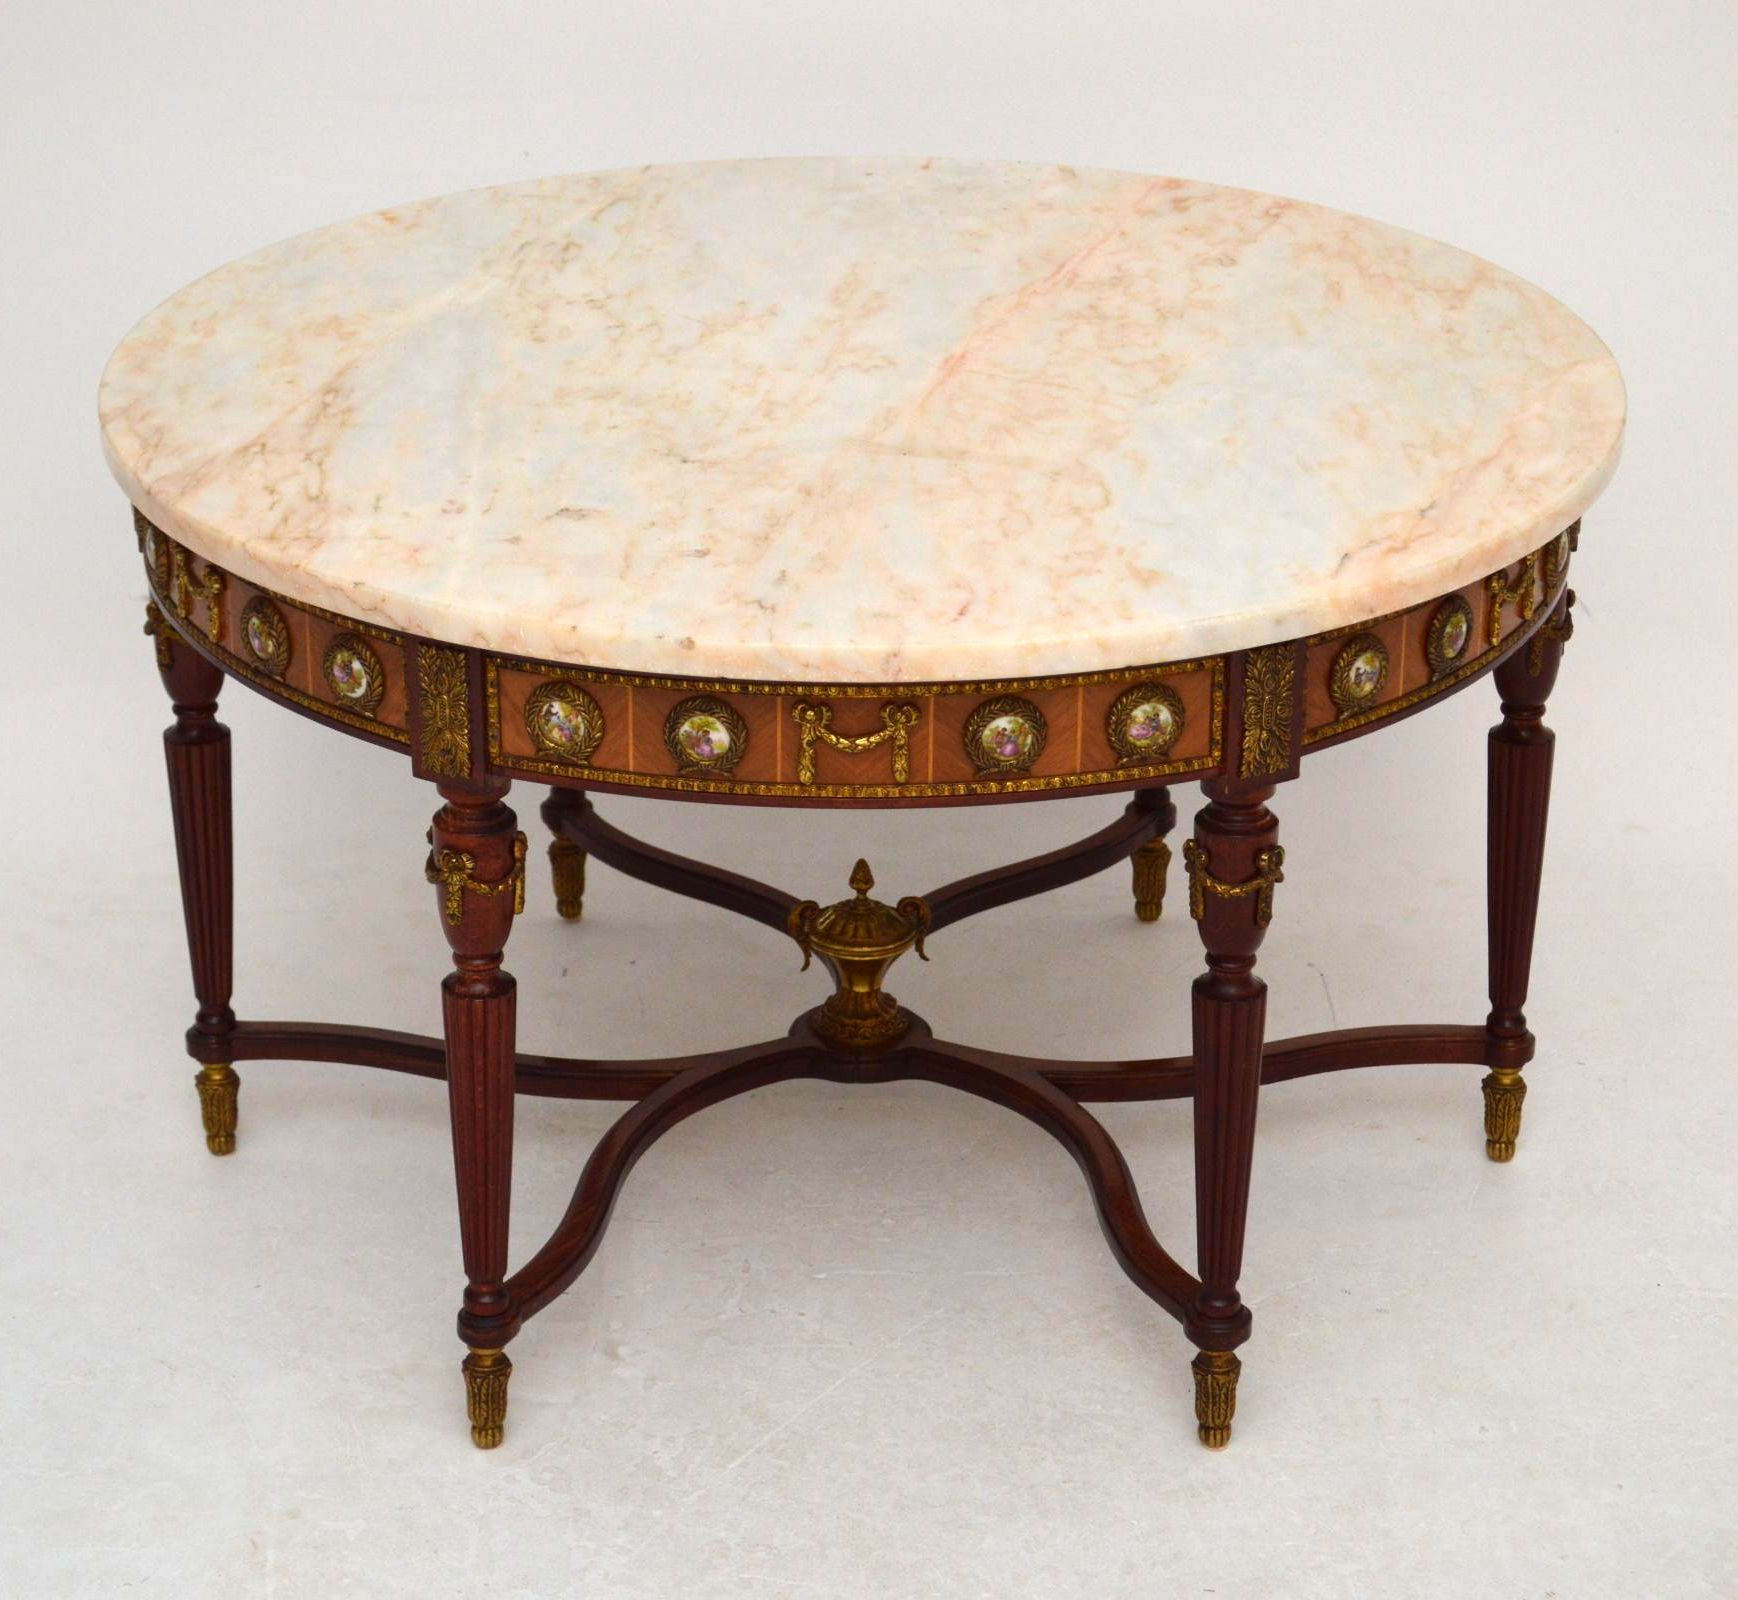 Antique French Style Circular Marble Top Coffee Table With